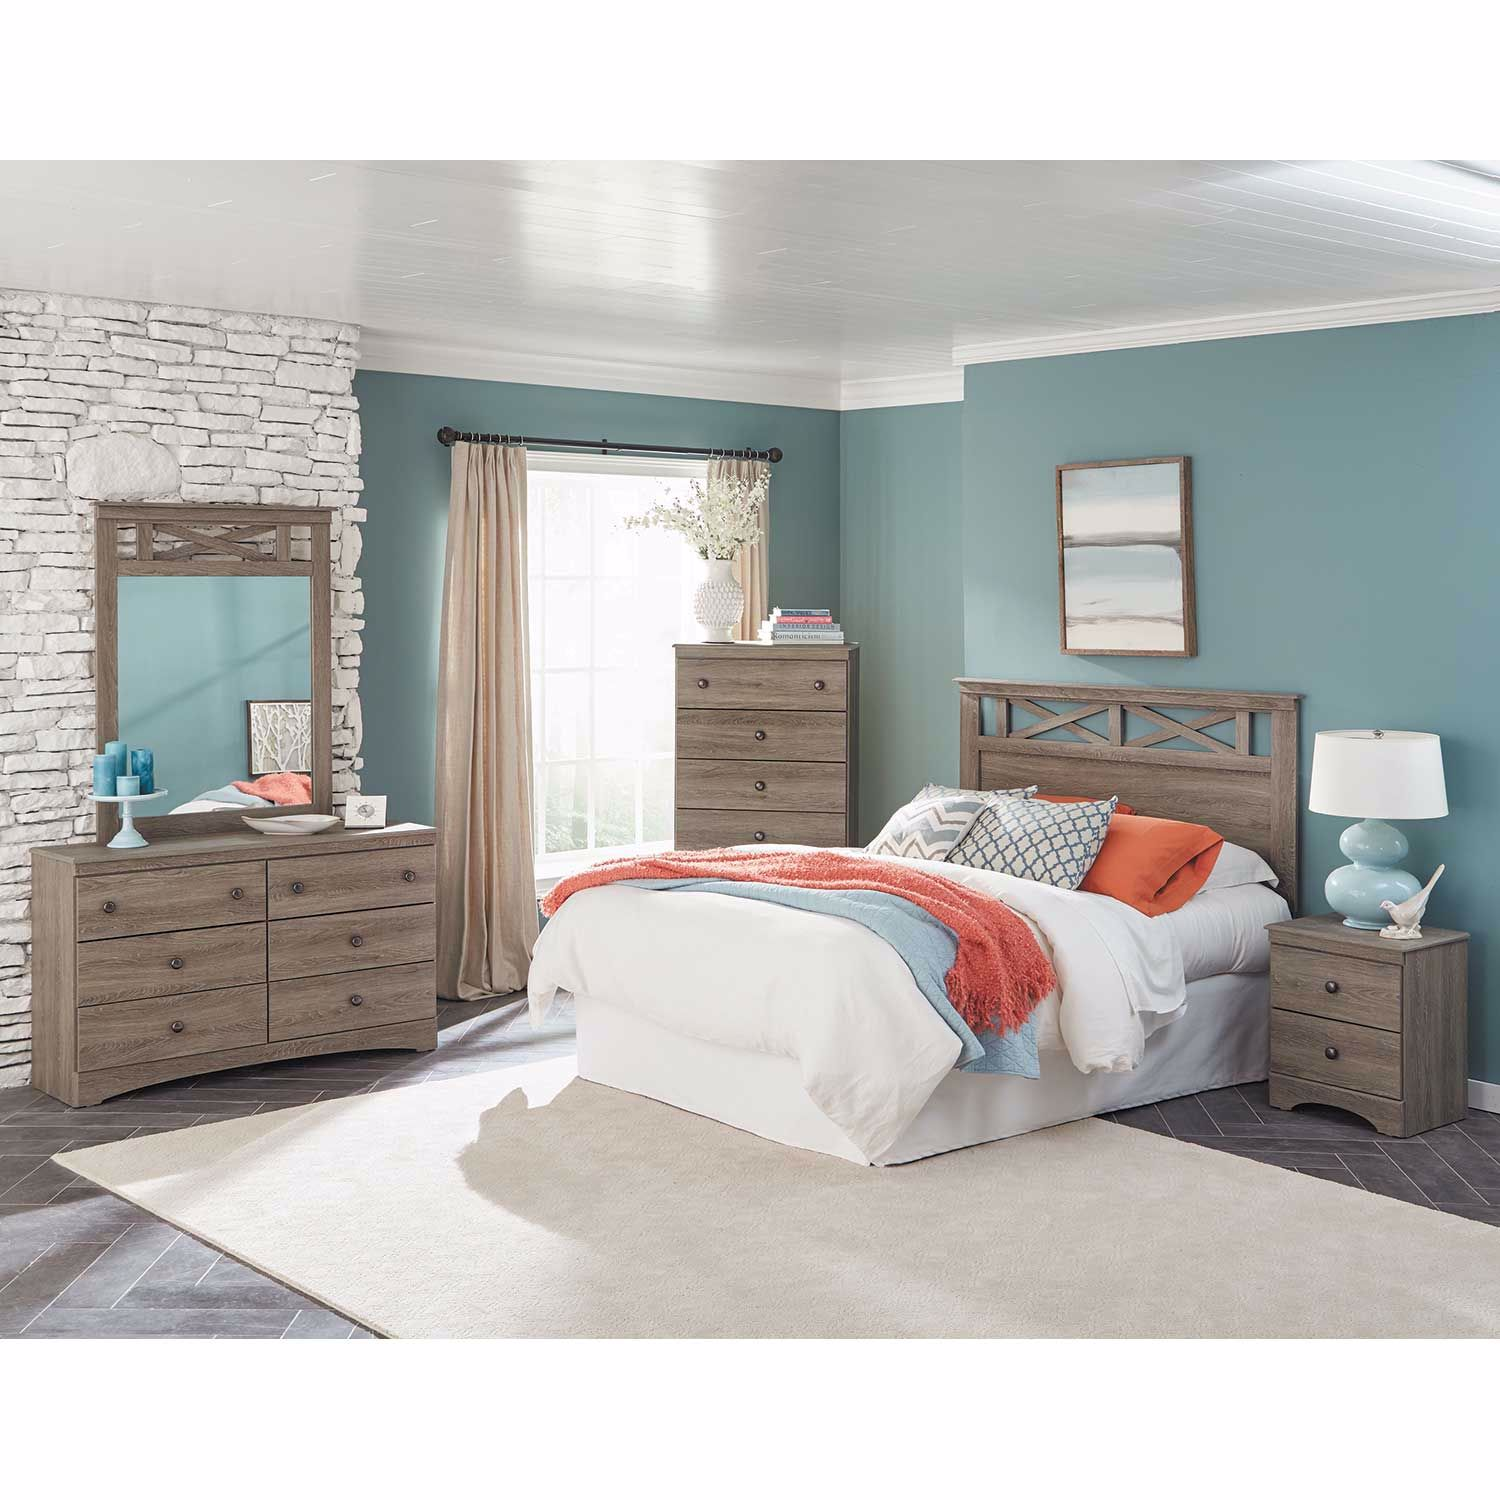 Picture of Mulberry 5 Drawer Chest